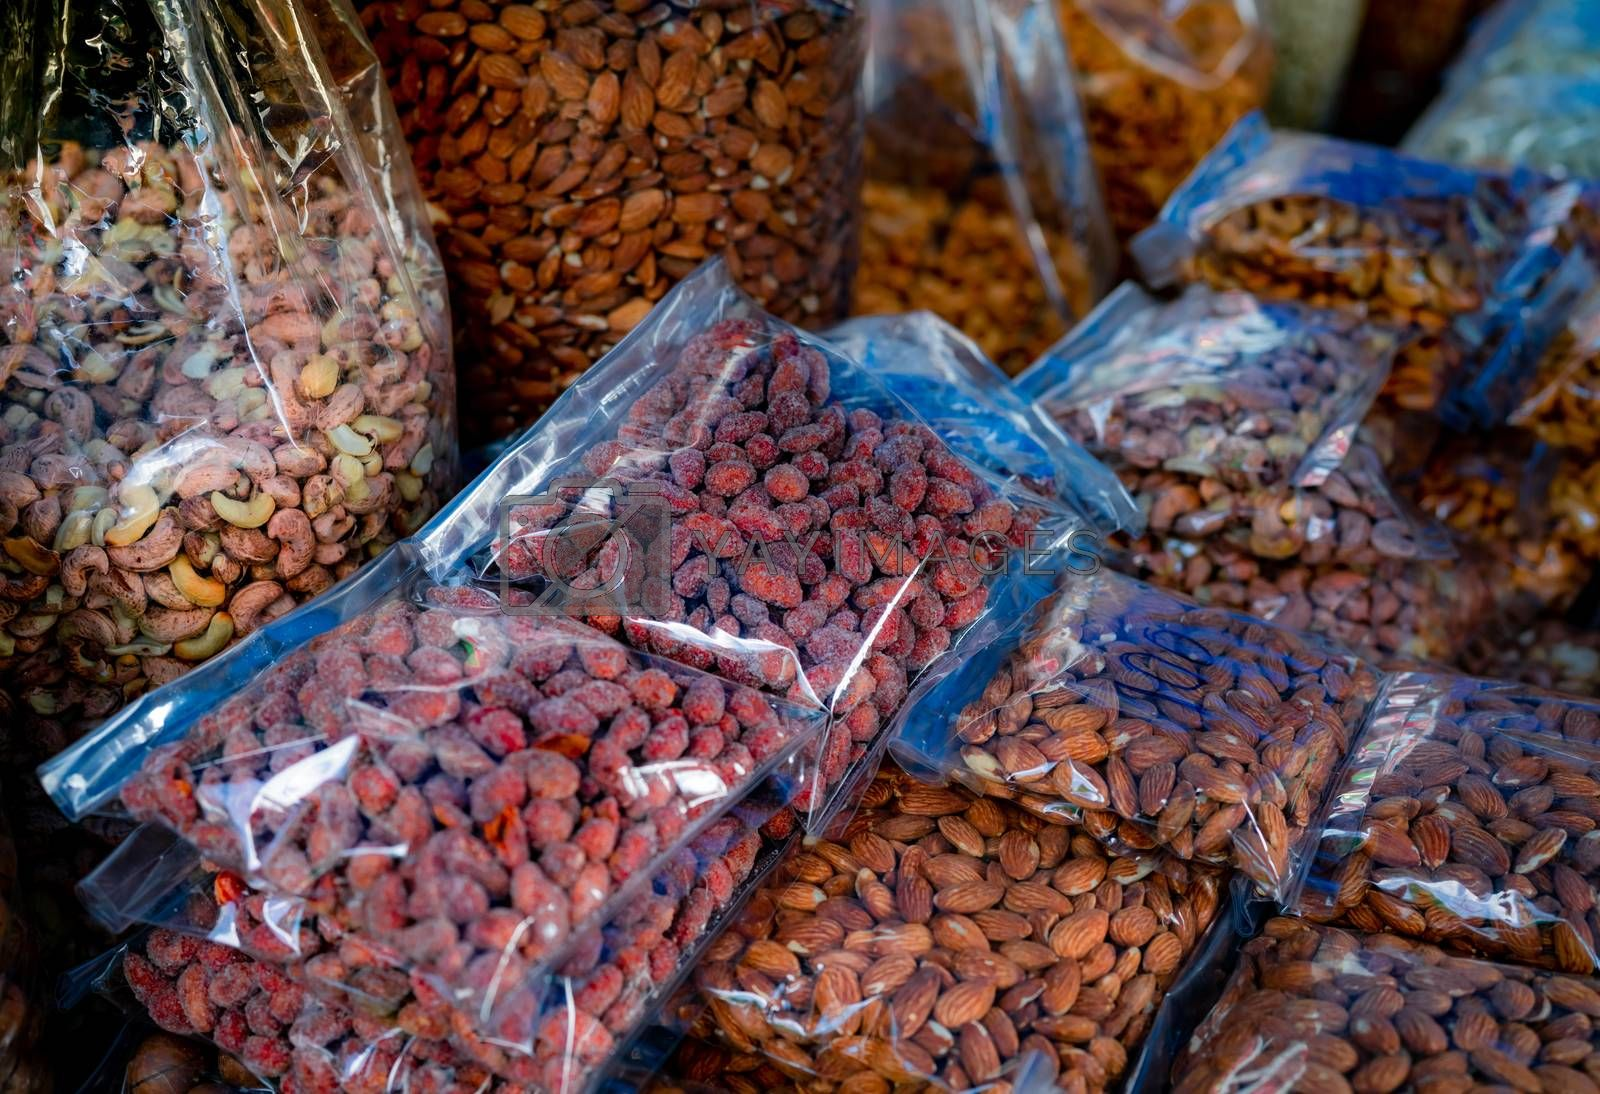 Almonds and cashew nuts in plastic bag at the market. Healthy food. High protein food for fitness or intermittent fasting people. Peeled seed. Healthy snack. Raw nuts for roasted. Vegan food in pack.